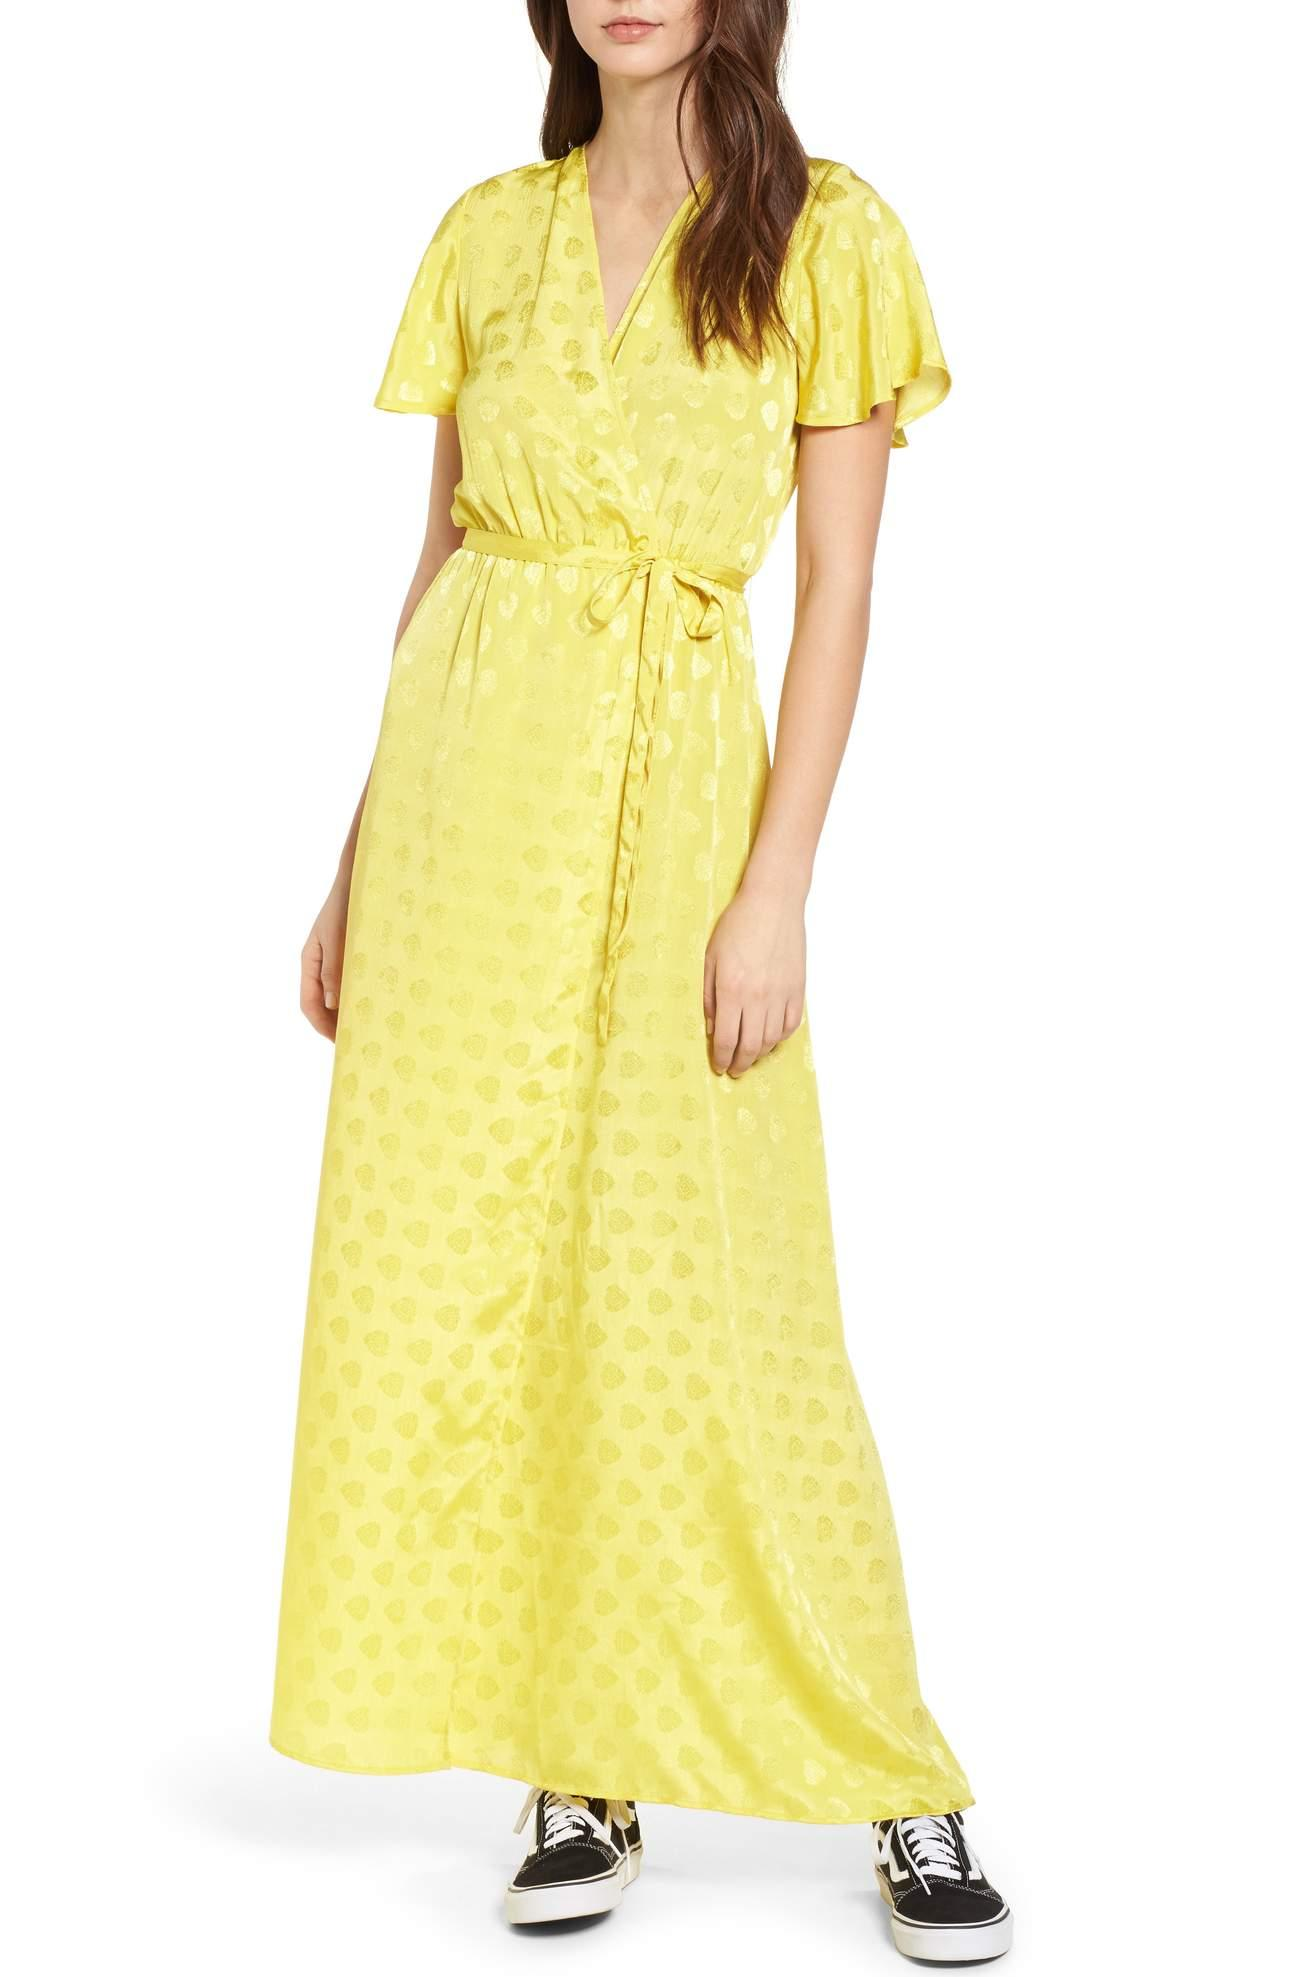 <p>This yellow EZ Days Satin Wrap Maxi Dress/STONE ROW just screams Spring! Sewn from emerald-hued satin, this lustrous maxi dress is styled with fluttering sleeves and a wrapped silhouette that creates an elegant, flattering shape. $98.00 at Nordstrom. (Image: Nordstrom){&nbsp;}</p><p></p>